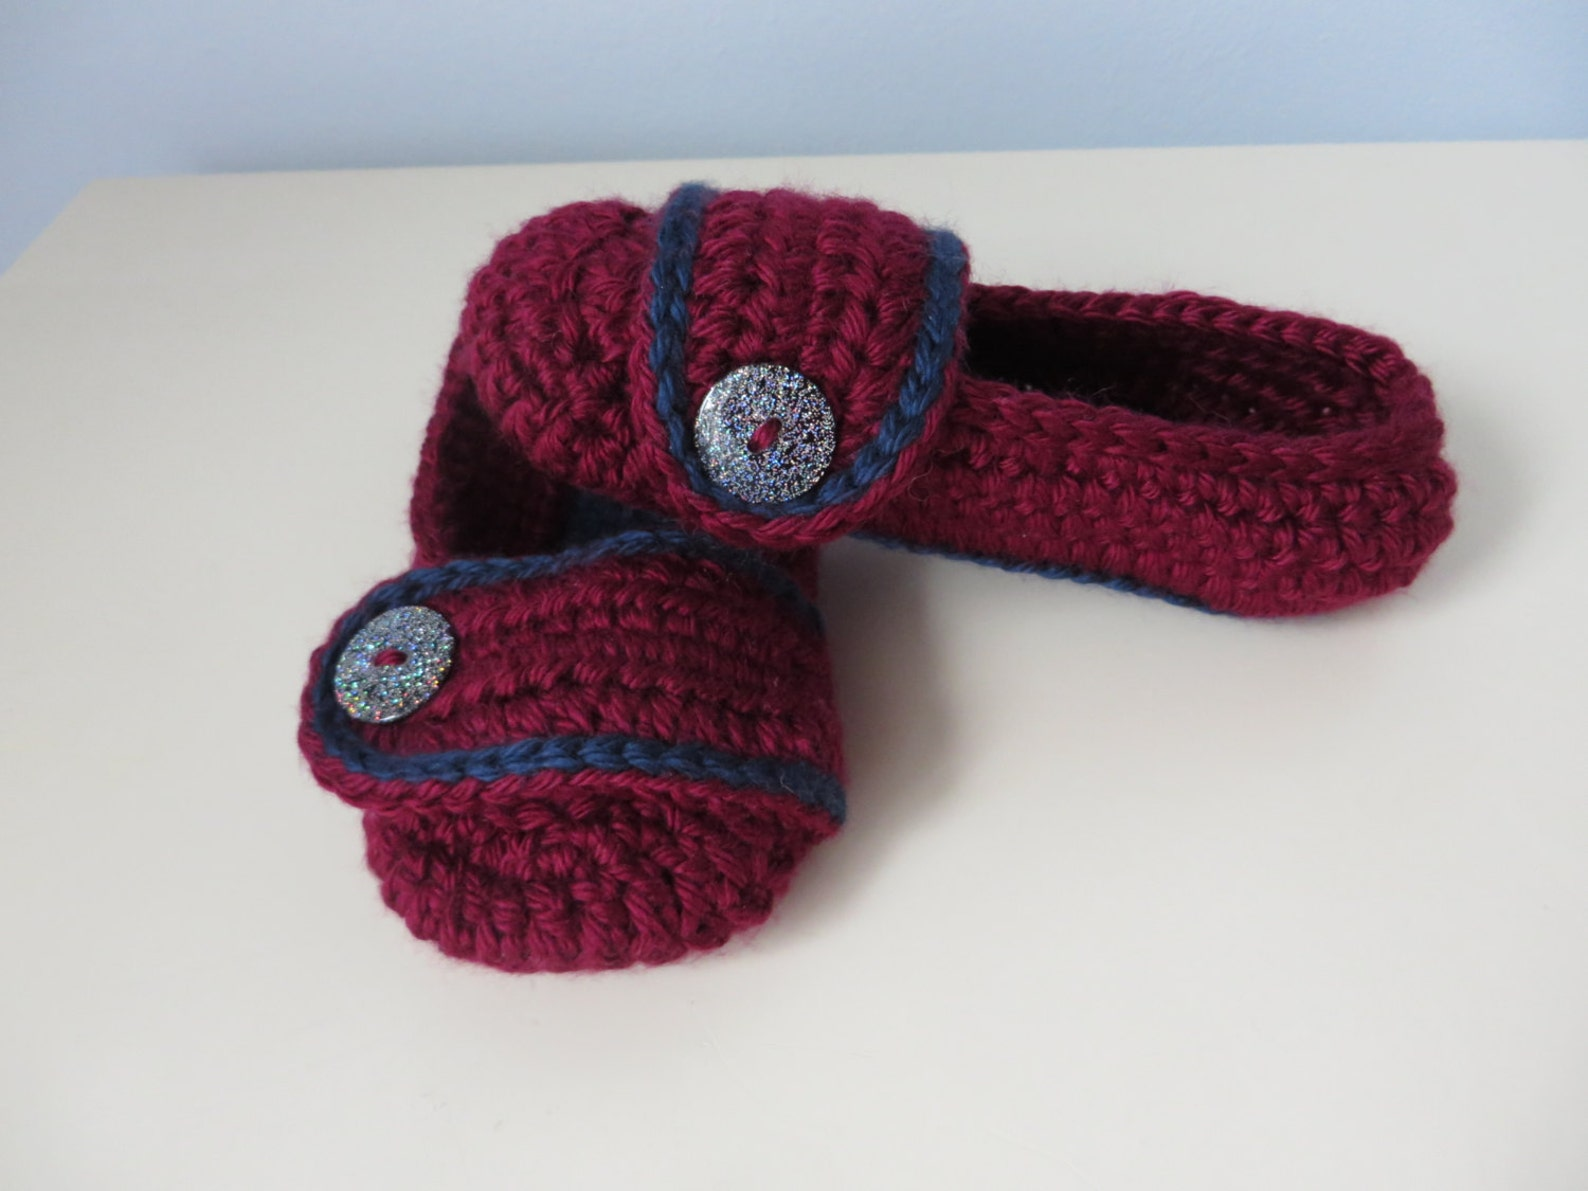 girls crocheted slip on slippers burgundy/navy colours 5.5 inch/14 cm sole ballet style soft slippers 2 years - 3 years preschoo